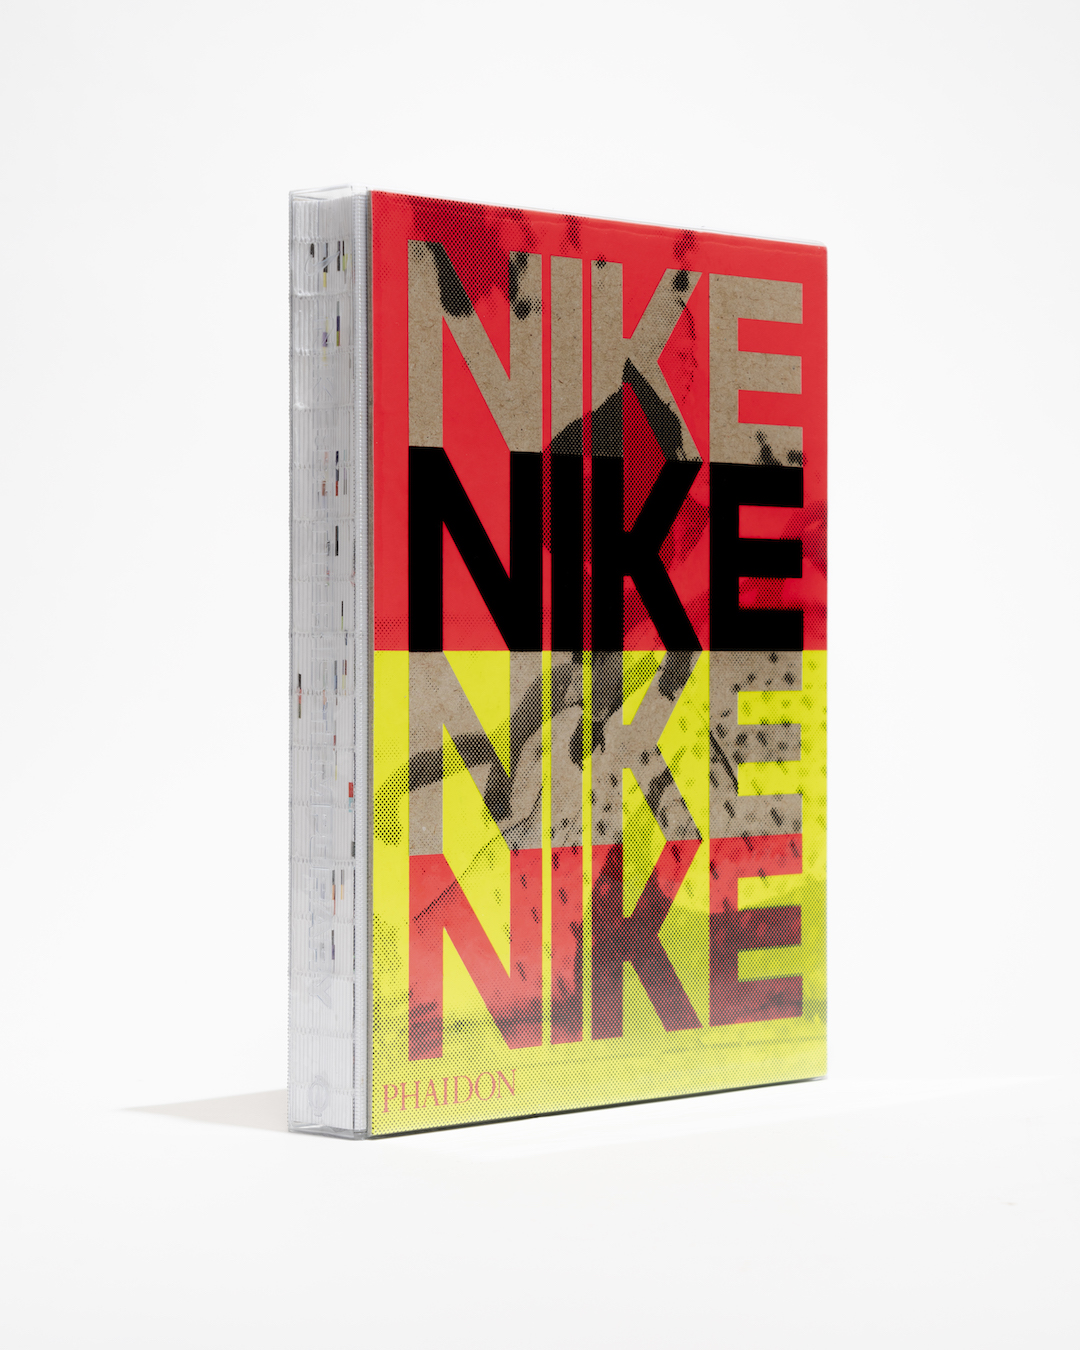 Announcing a landmark publication - Nike: Better is Temporary